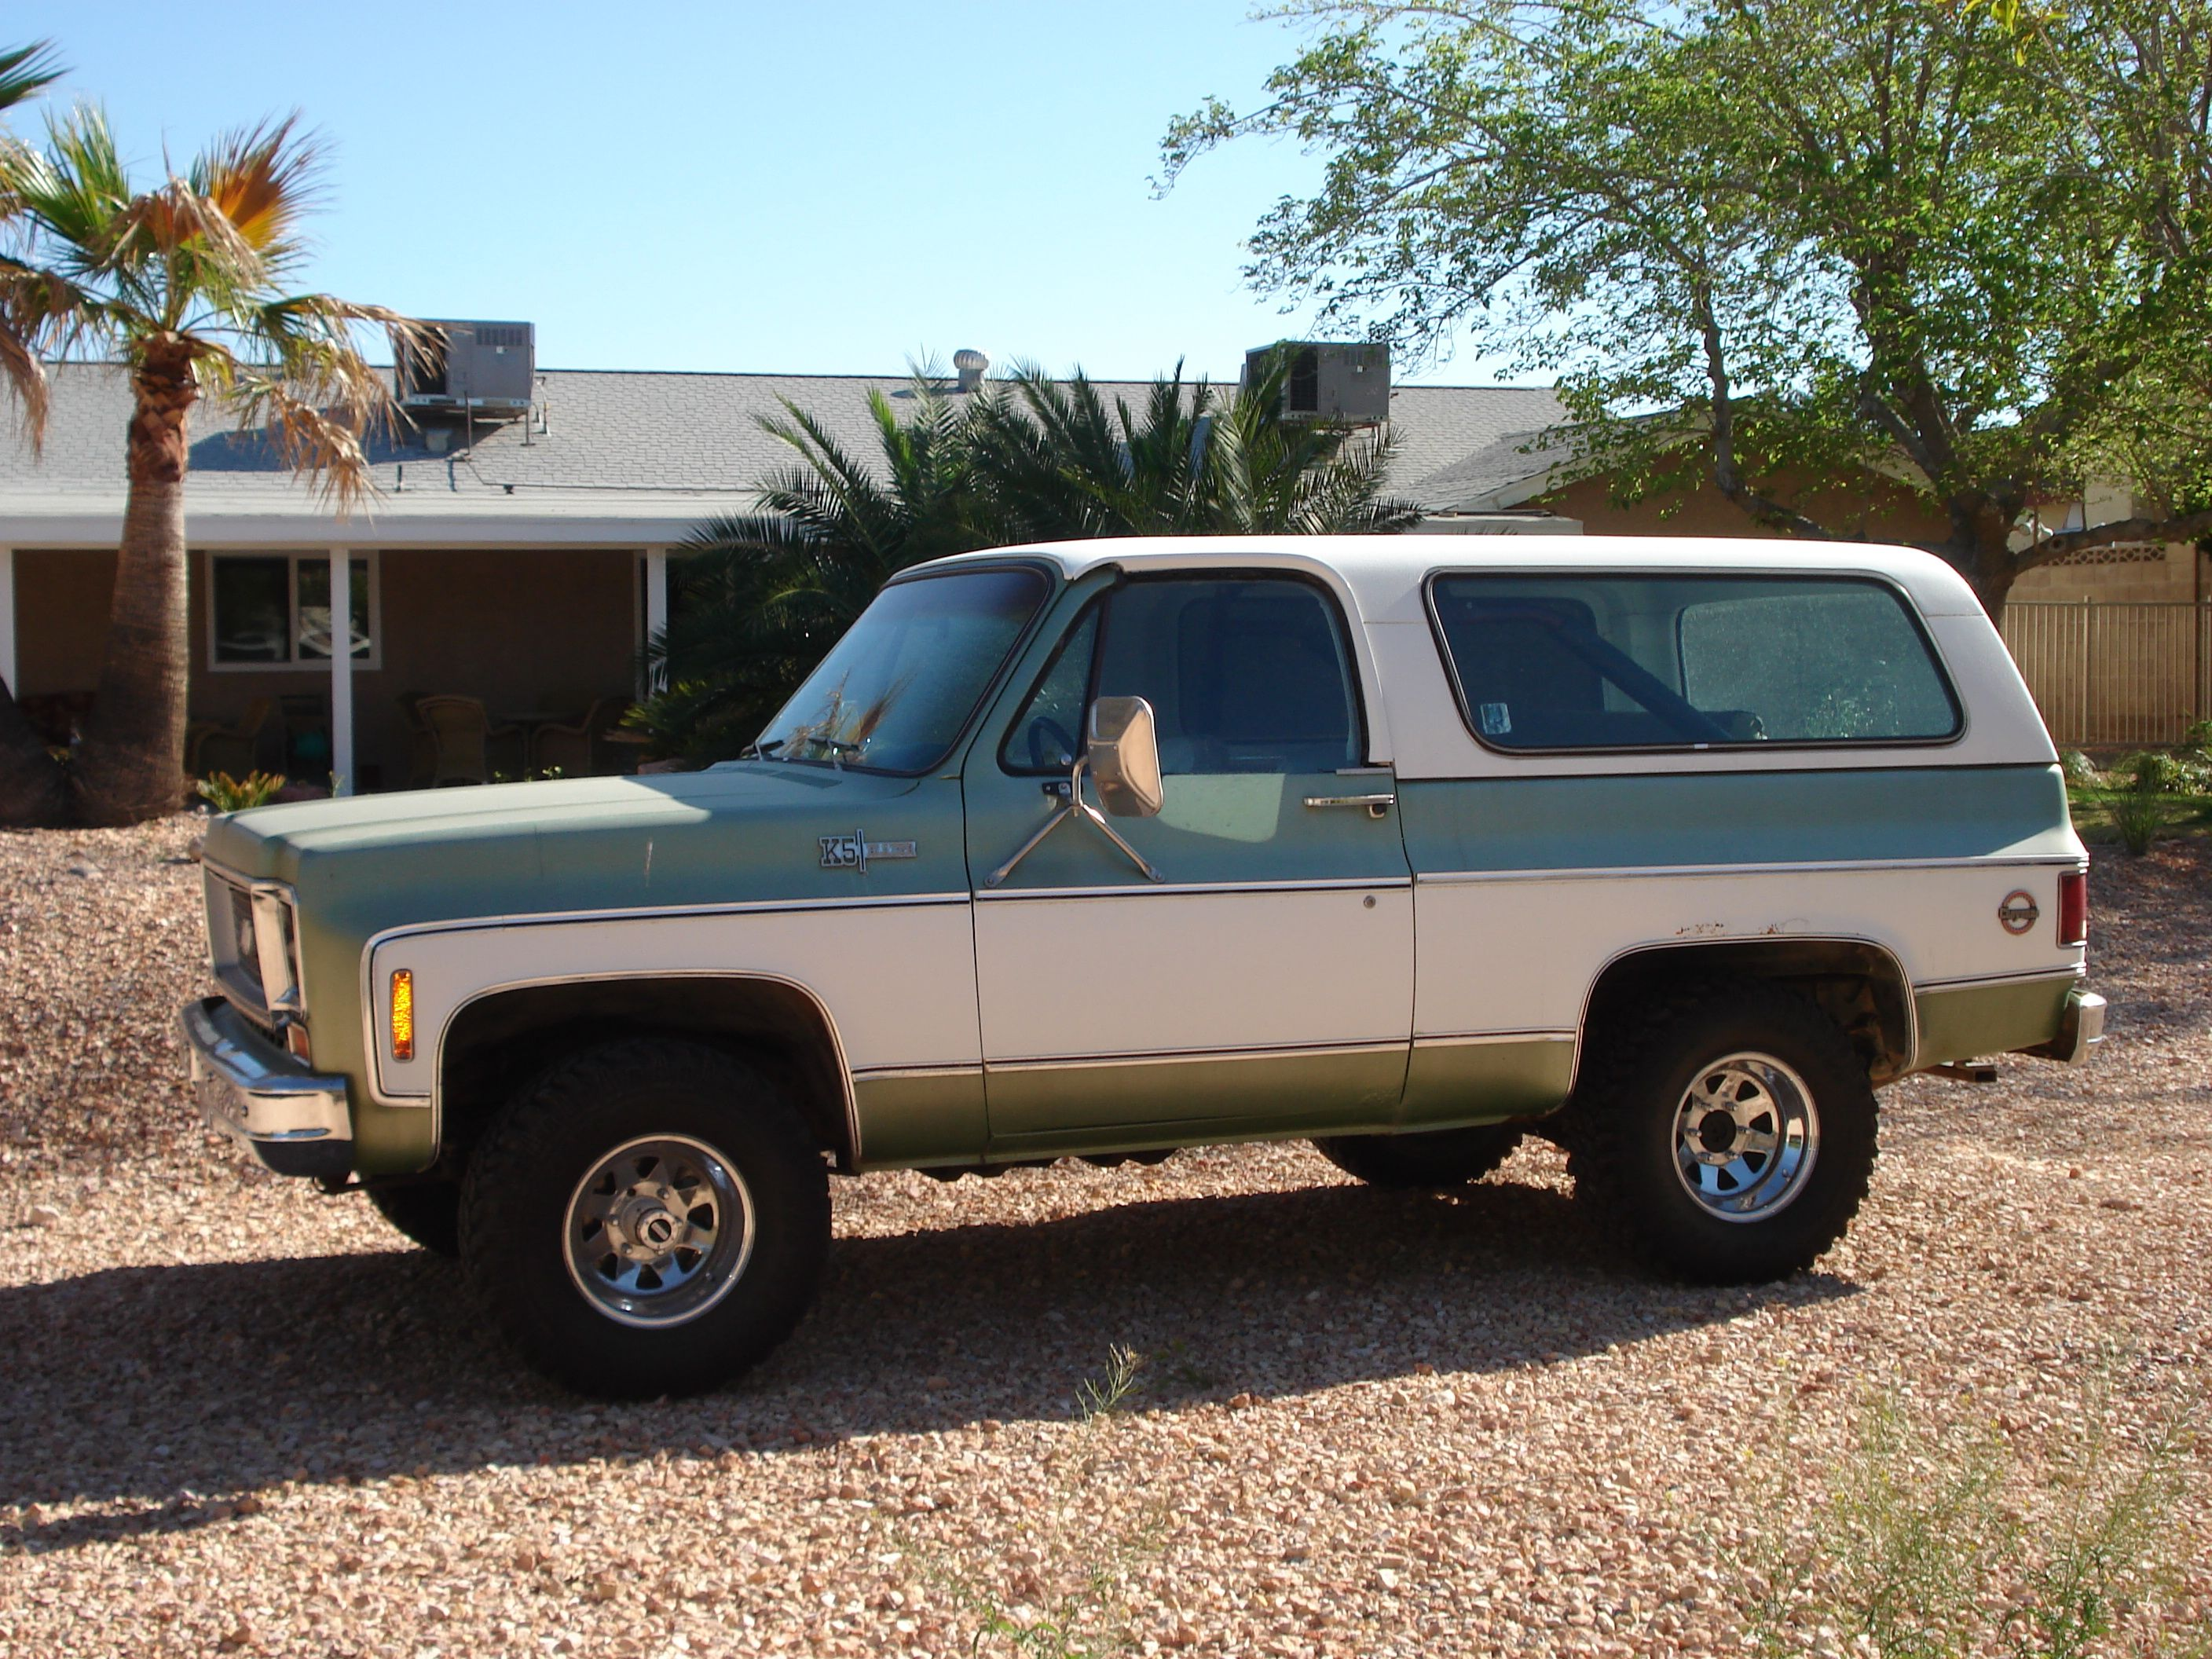 The 1974 chevy blazer my dad taught me to drive when i was 16 brings back so many happy memories